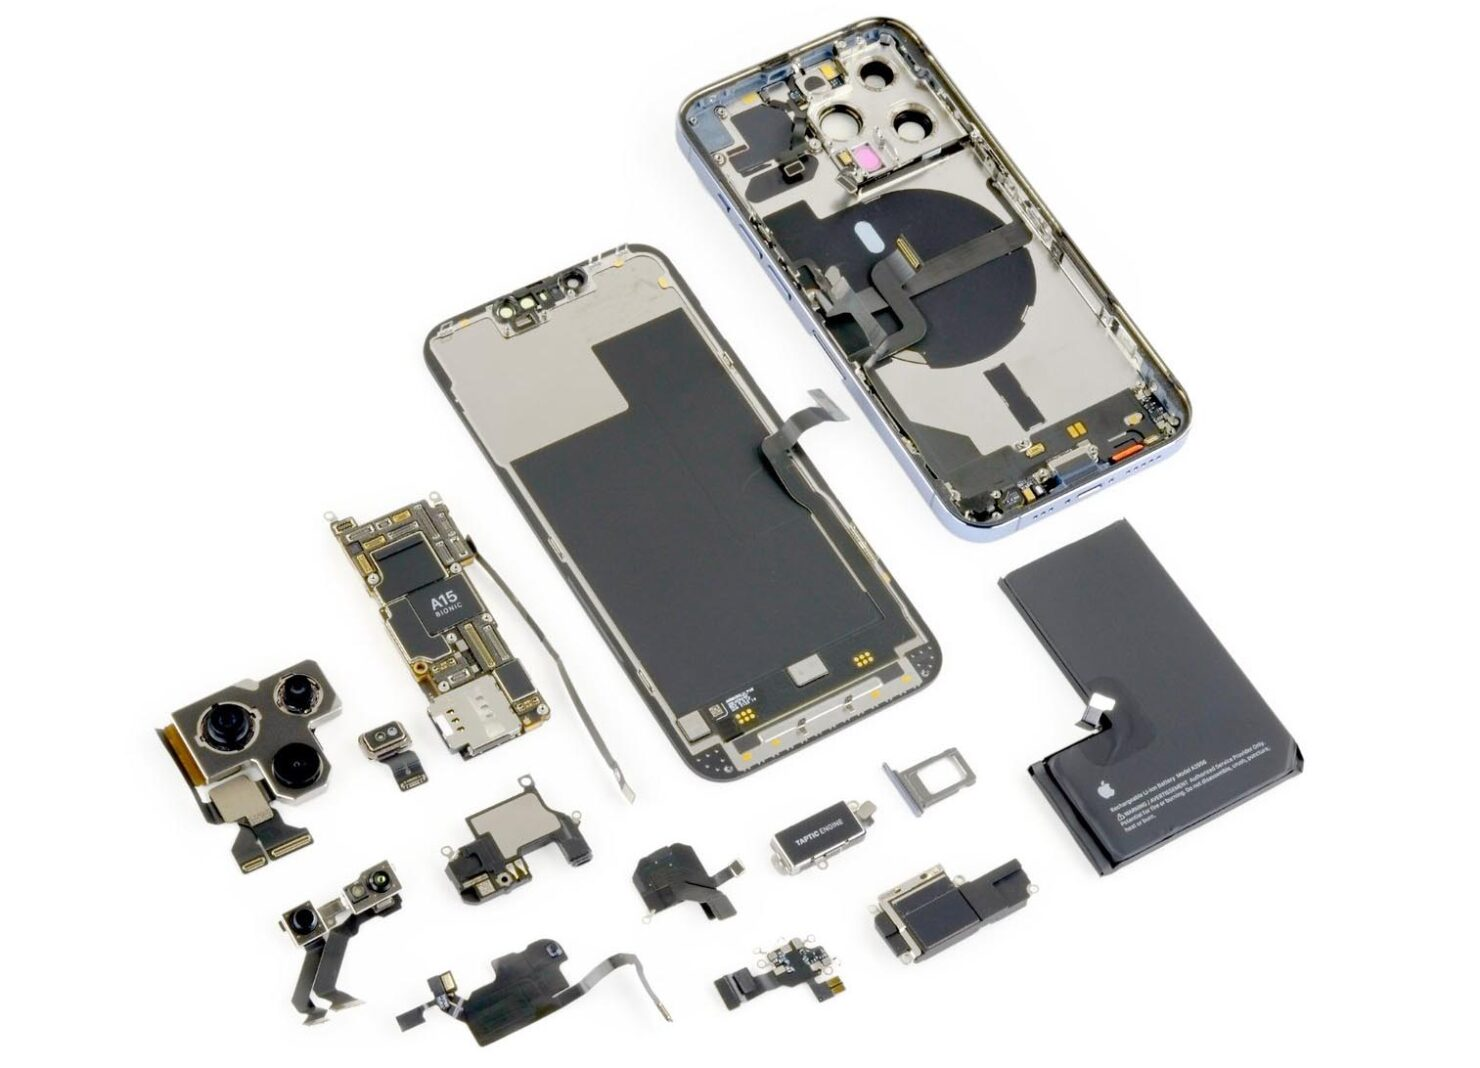 Complete iPhone 13 Pro Teardown Shows How Apple Reduced Face ID Camera, but Third-Party Repairs Will Be Discouraged